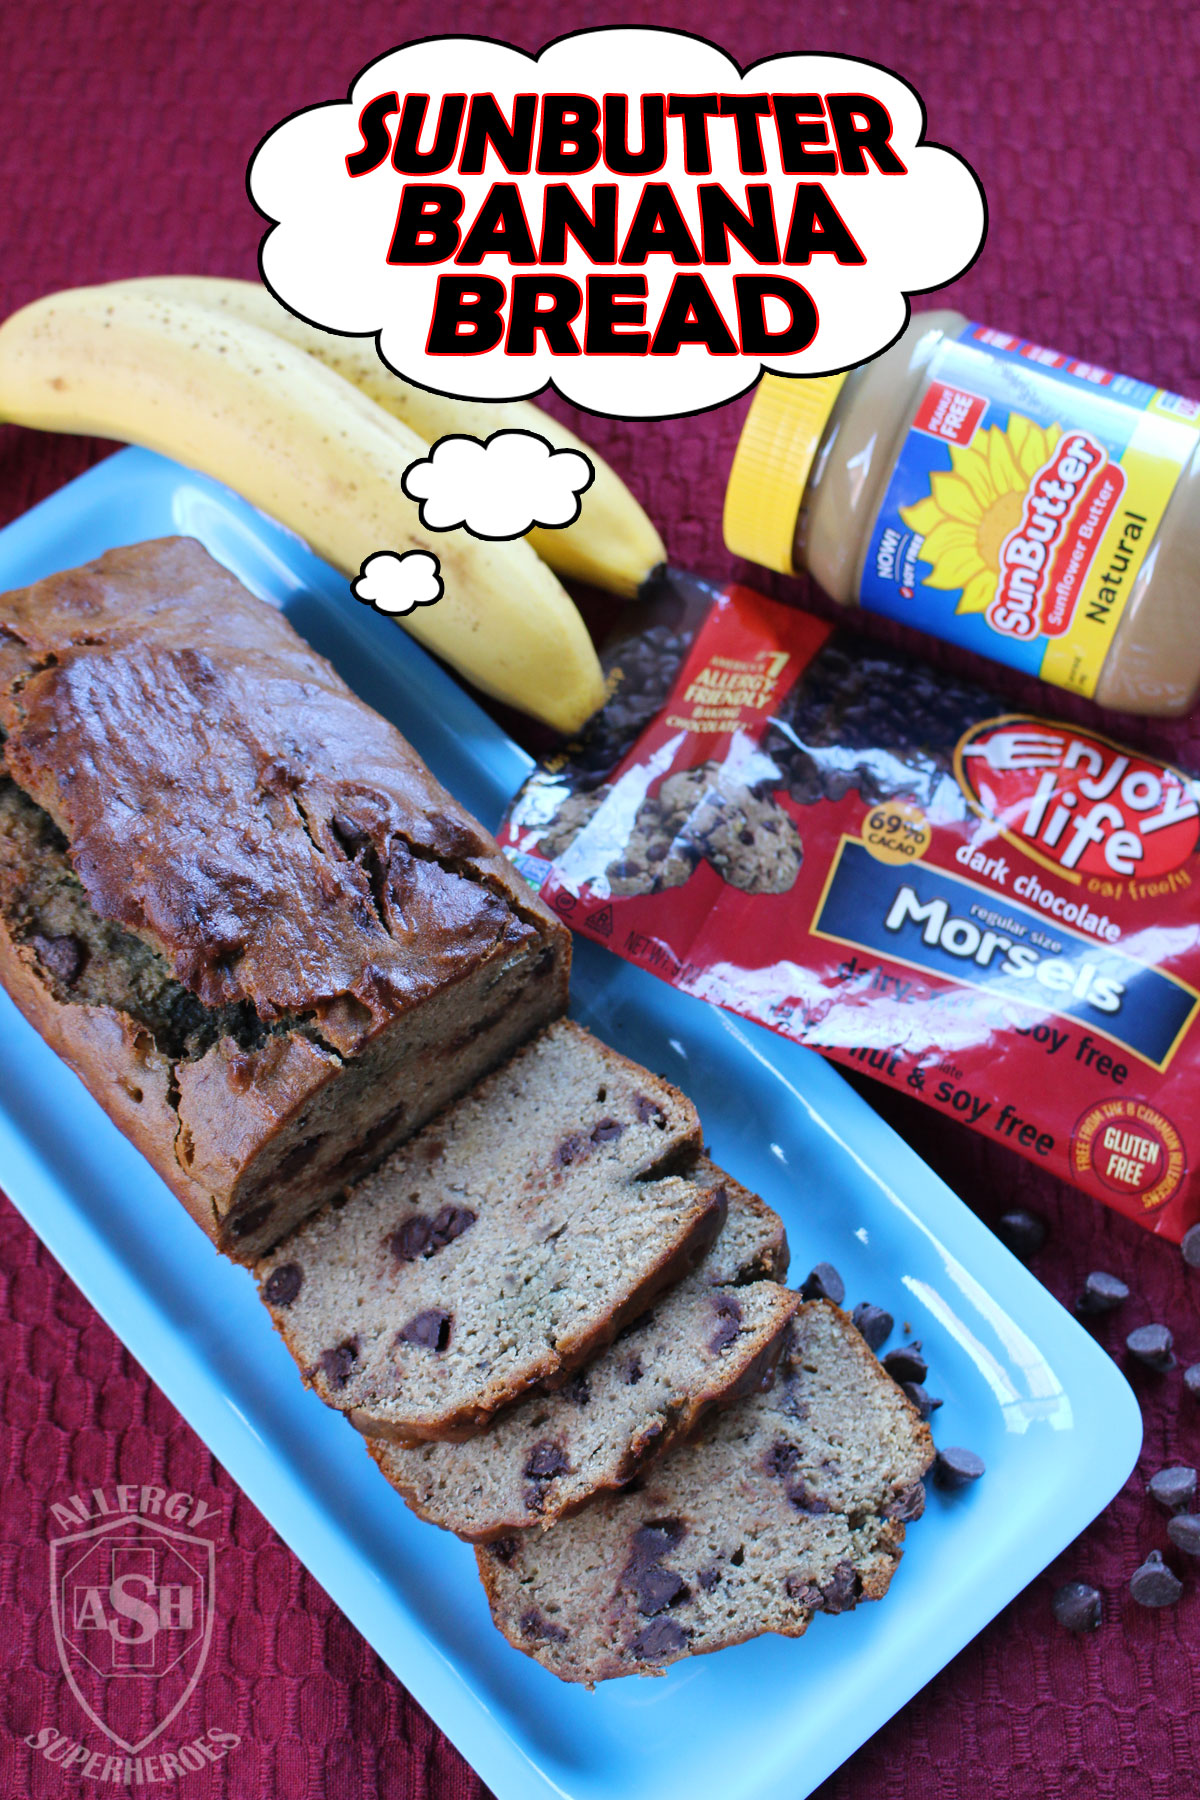 Sunbutter Banana Bread Enjoy Life Foods Dark Chocolate morsels recipe by Allergy Superheroes. Top 8 free! Peanut free, tree nut free, egg free, dairy free, soy free, wheat/gluten free, fish free, shellfish free.